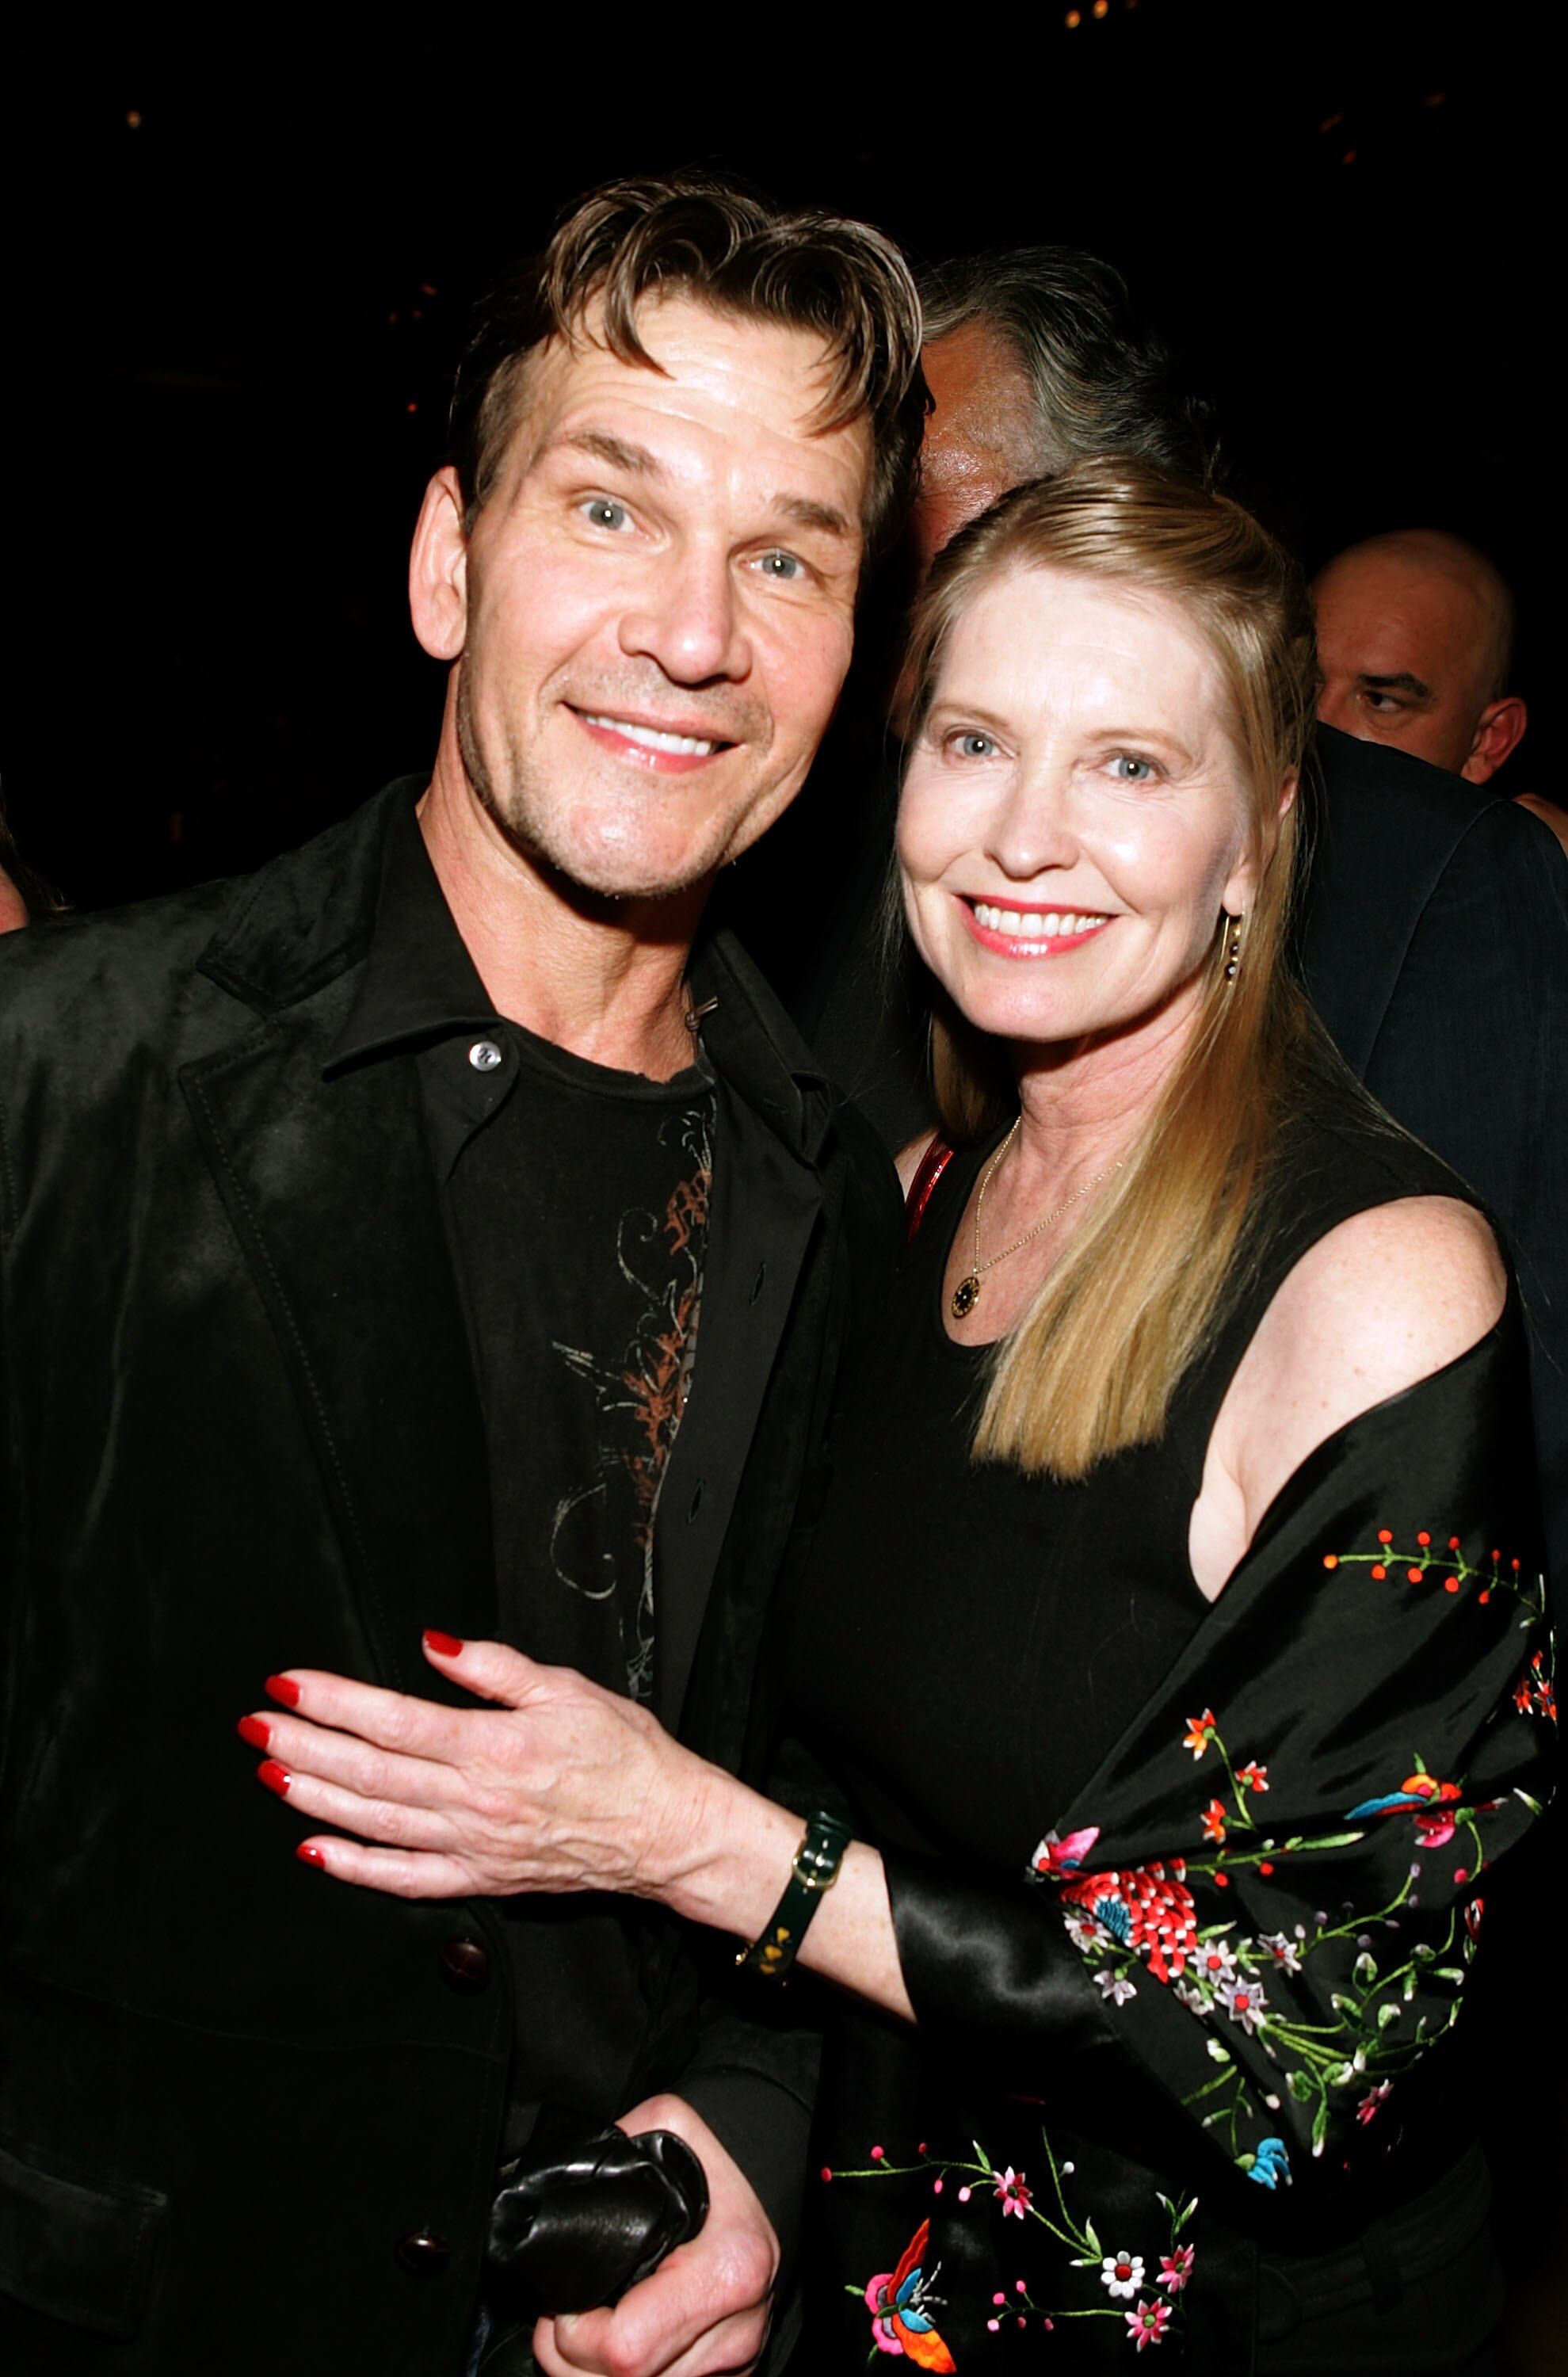 Patrick Swayze and Lisa Niemi at a red carpet event. | Source: Getty Images